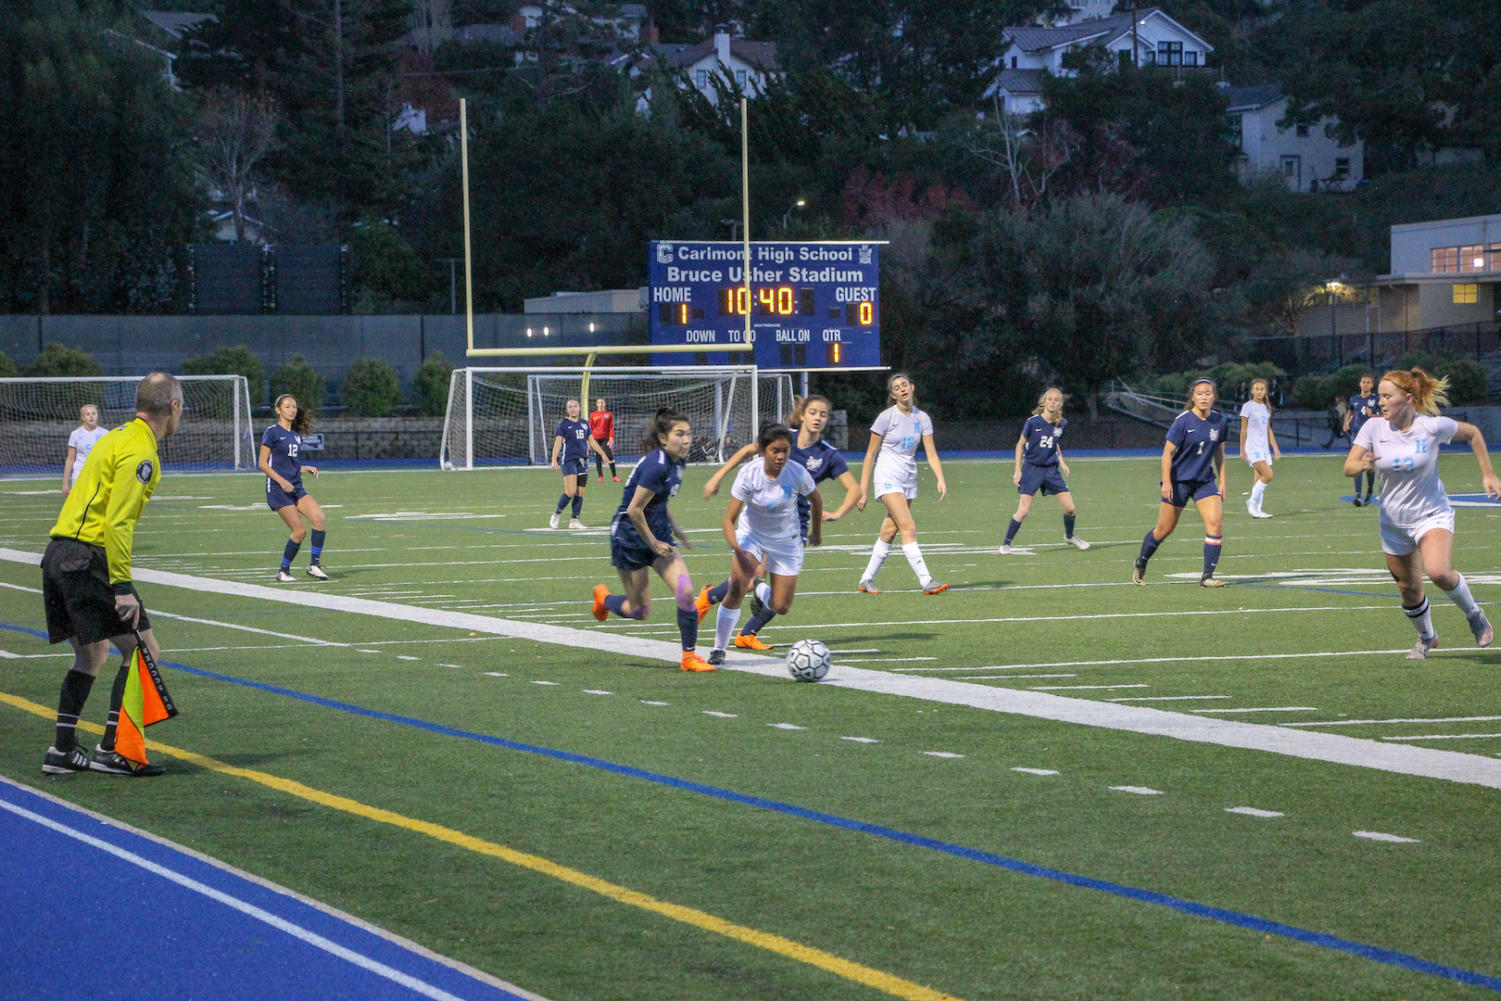 Kaylee Leong, a senior, takes a defender down the wing during the first half.